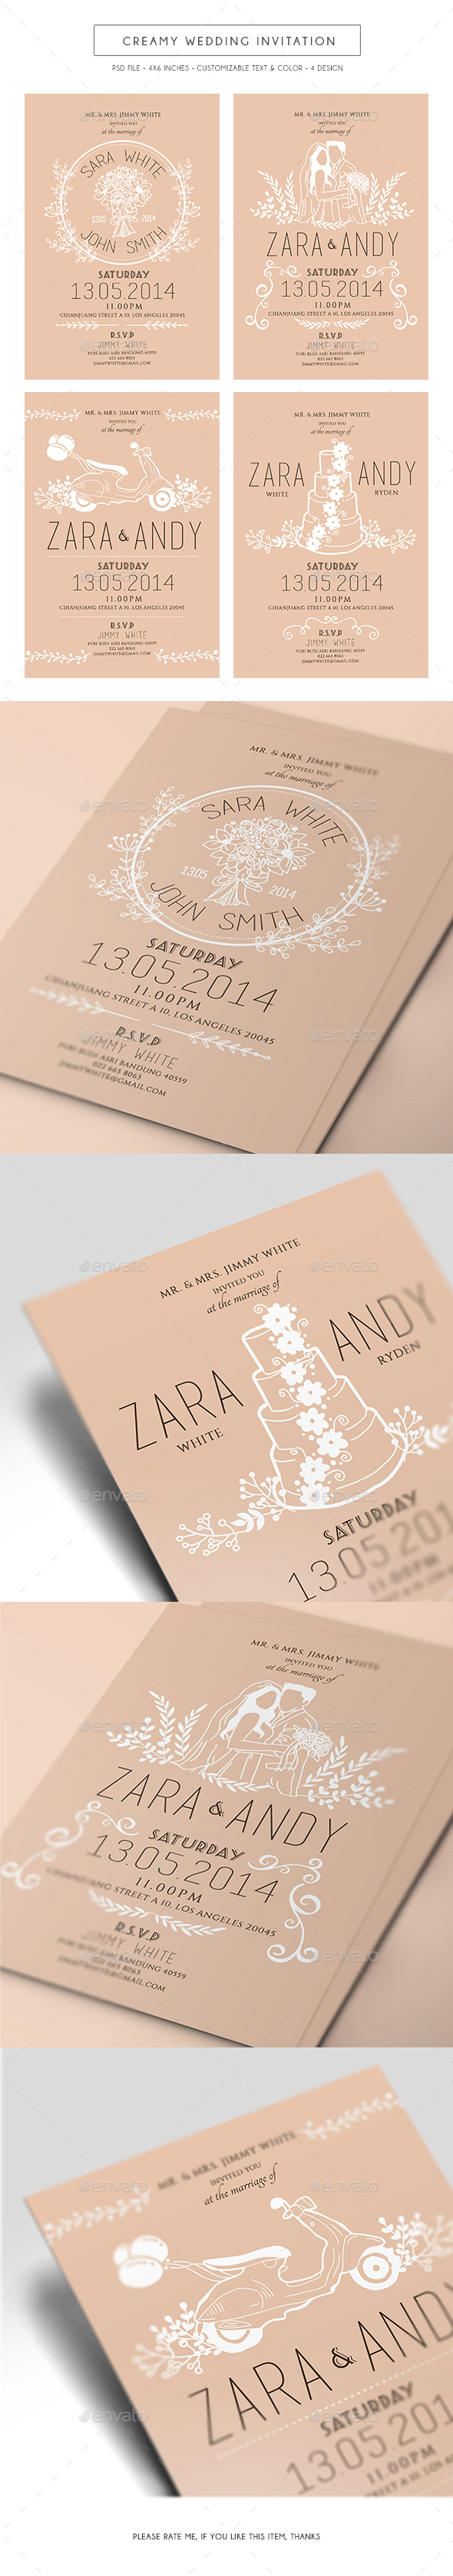 Creamy Wedding Invitation - Weddings Cards & Invites